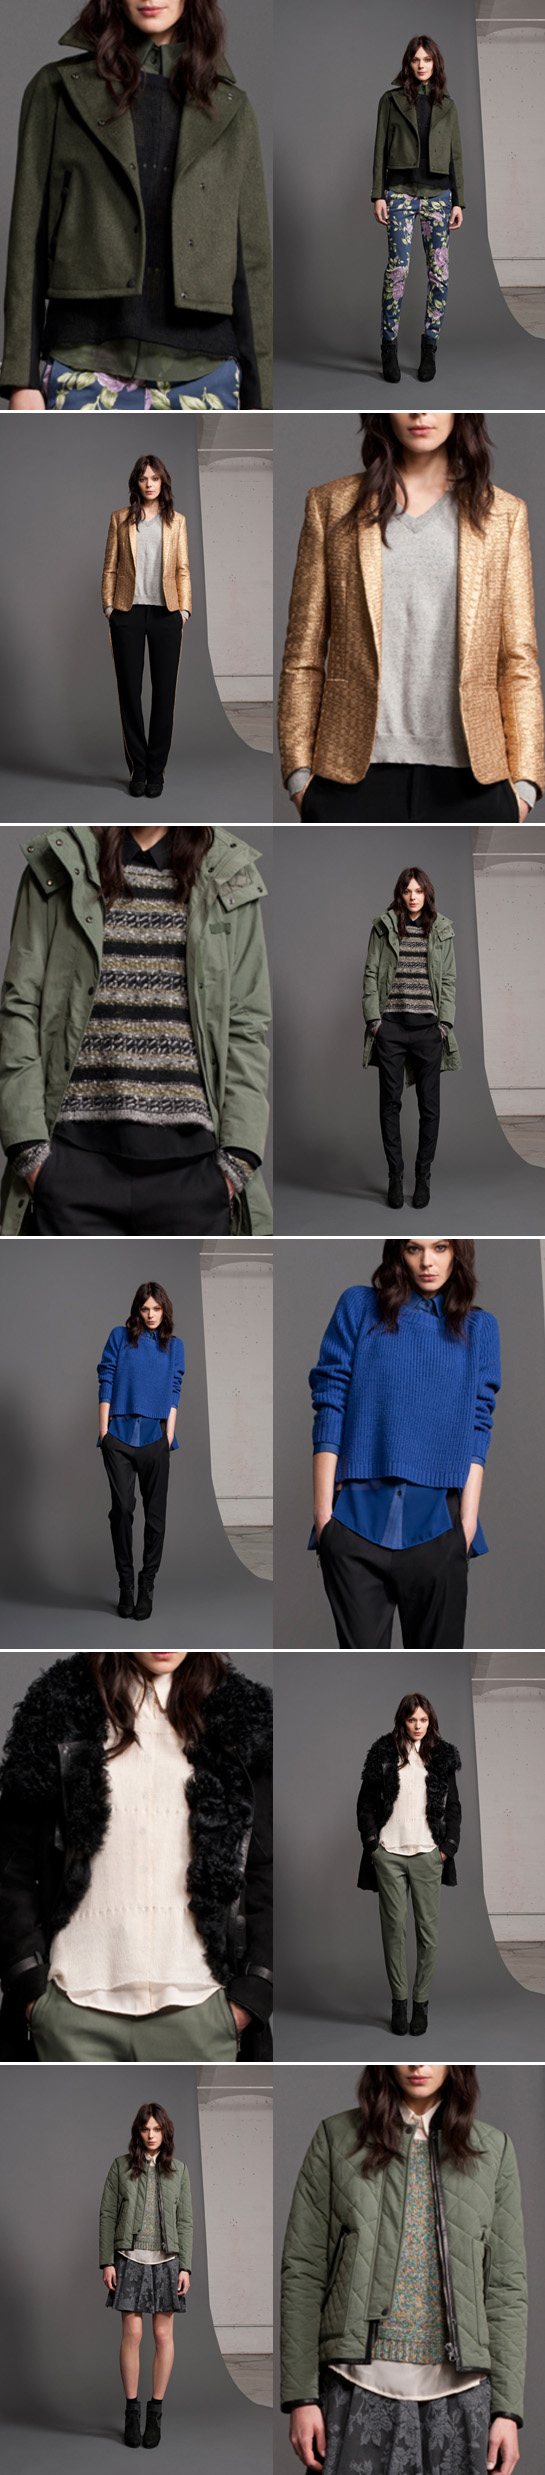 rag & bone resort 2013 sweaters